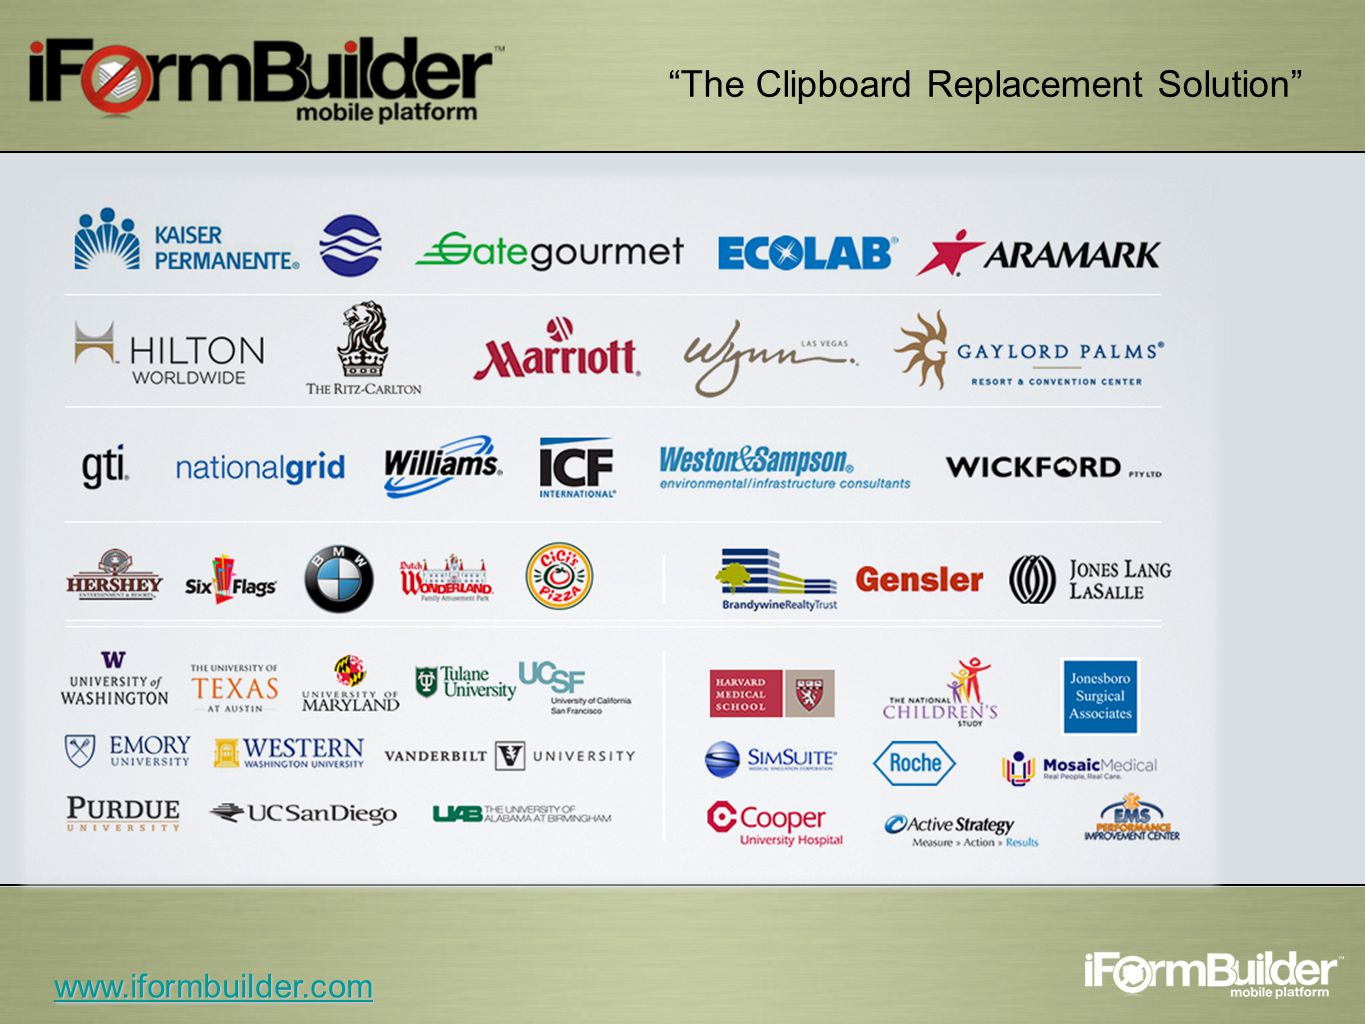 The Clipboard Replacement Solution www.iformbuilder.com